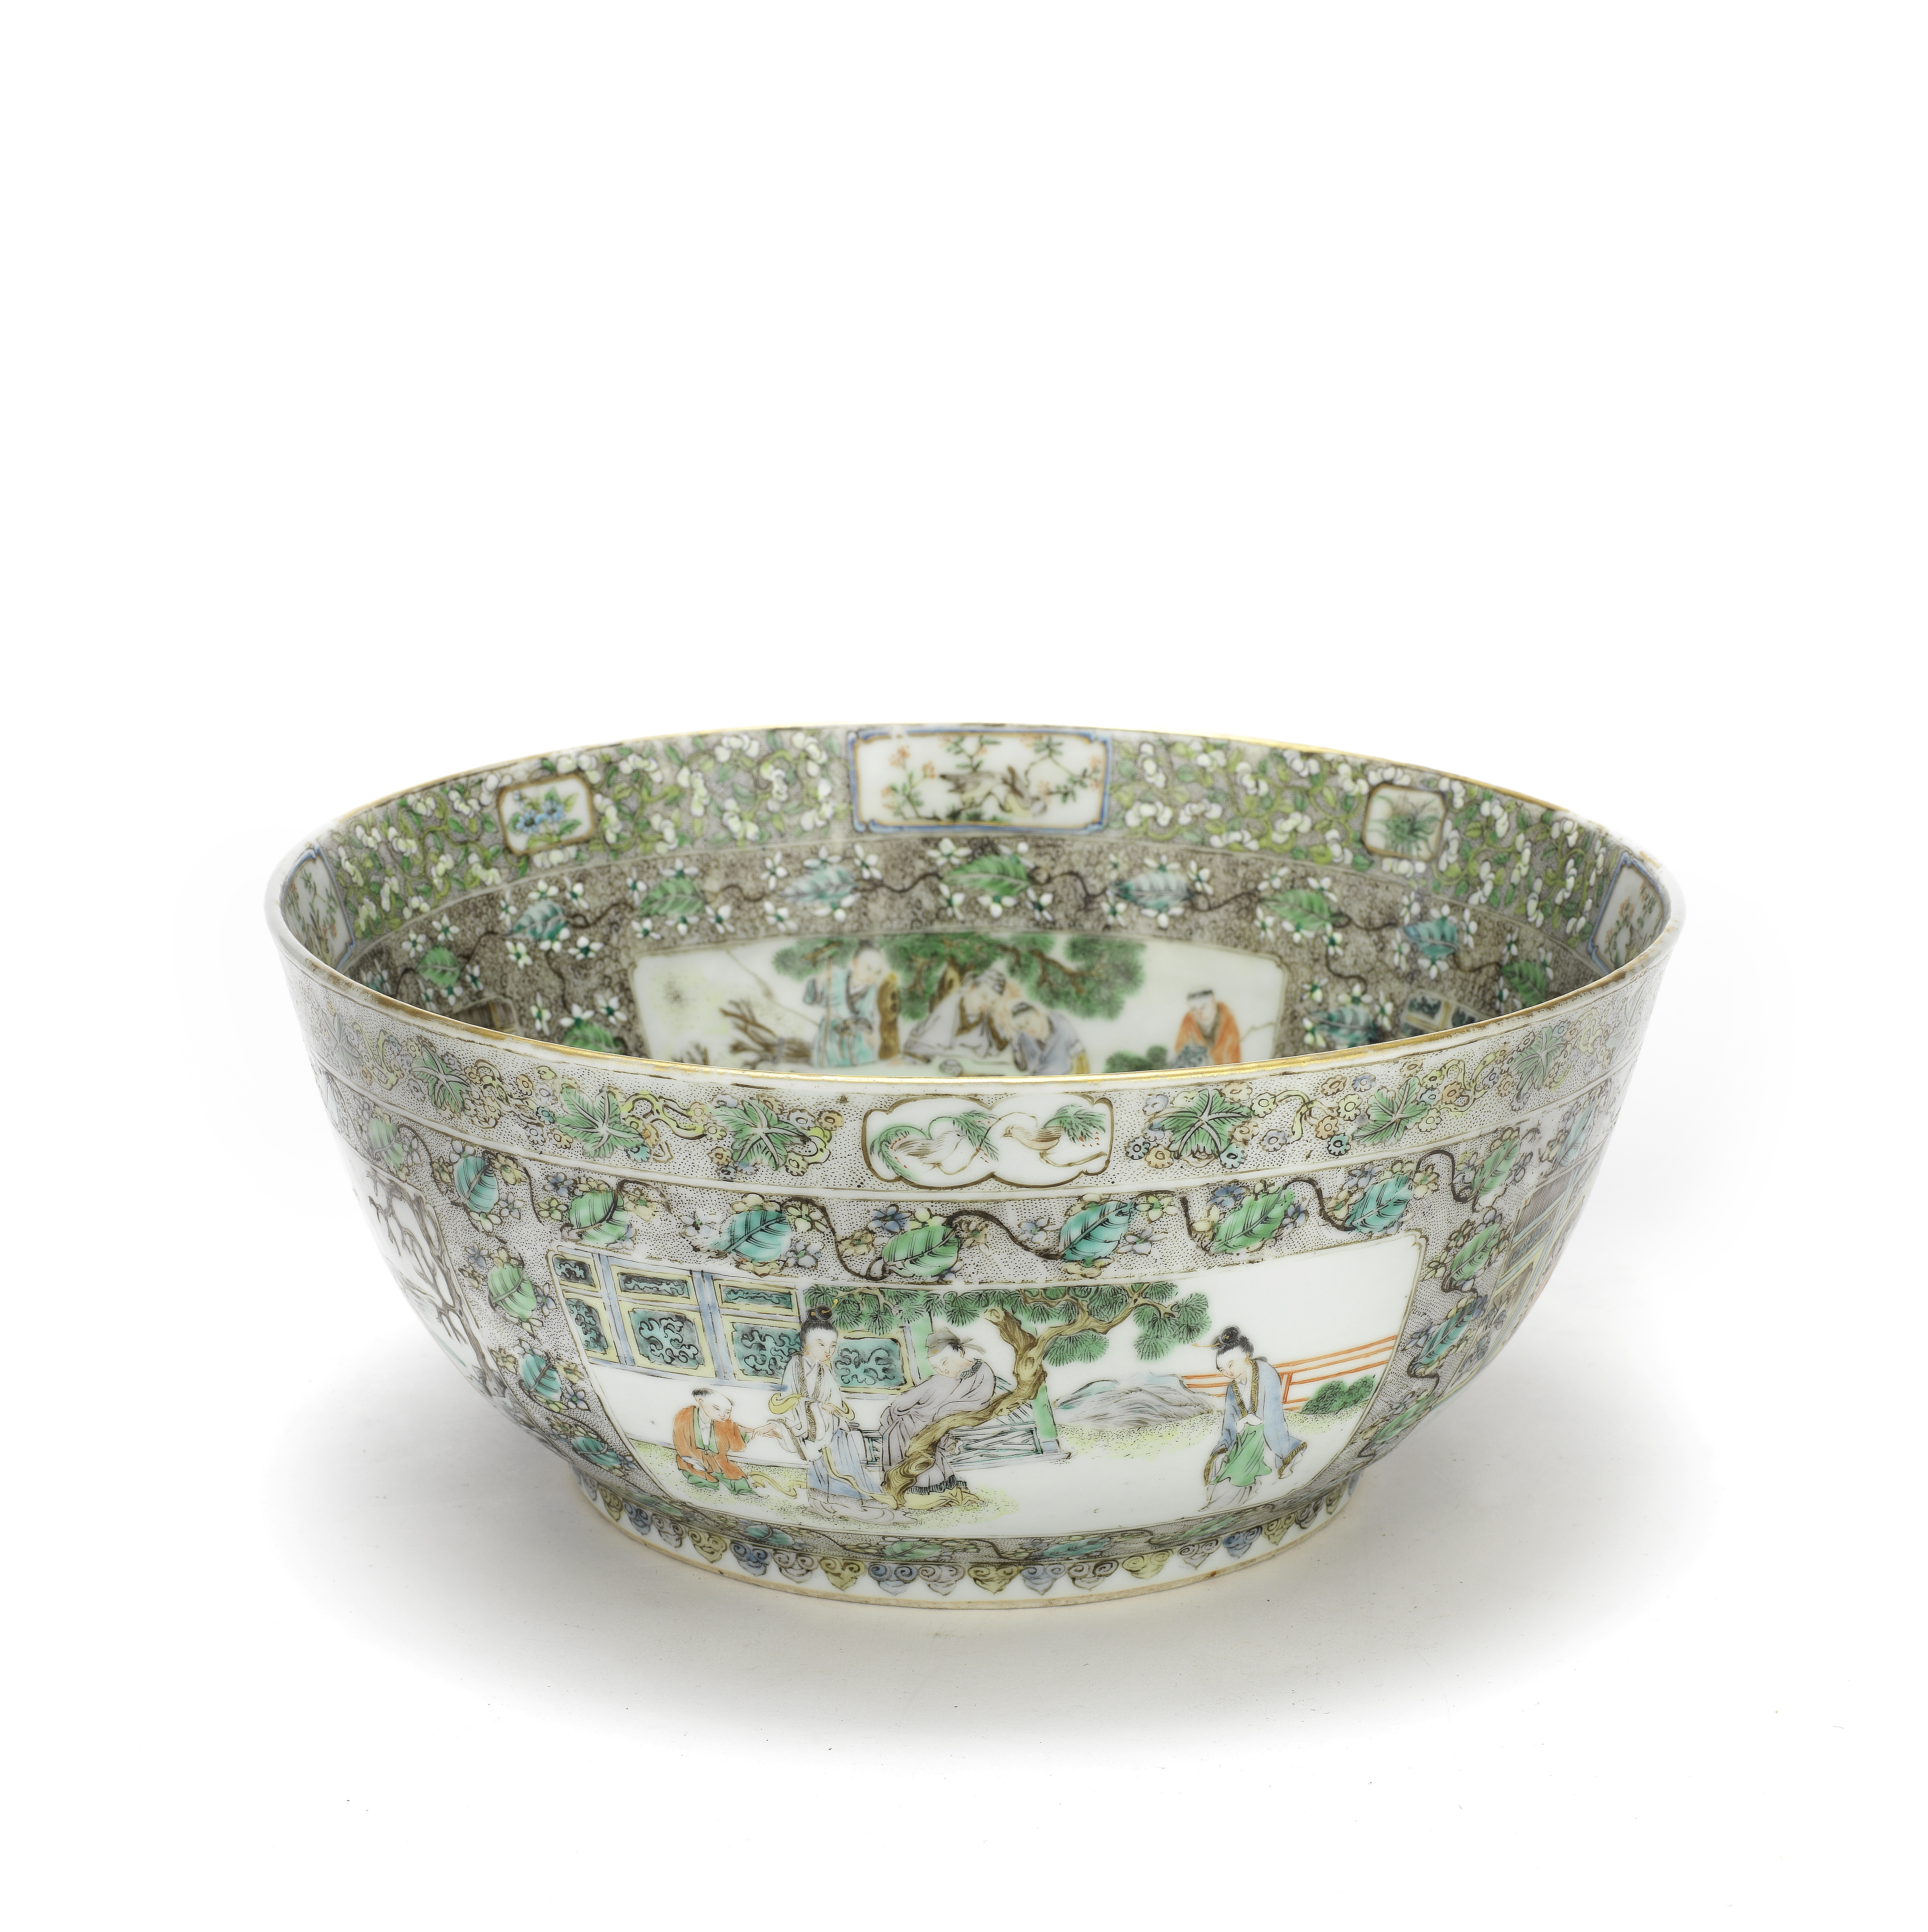 A FAMILLE VERTE PUNCH BOWL Late 19th century